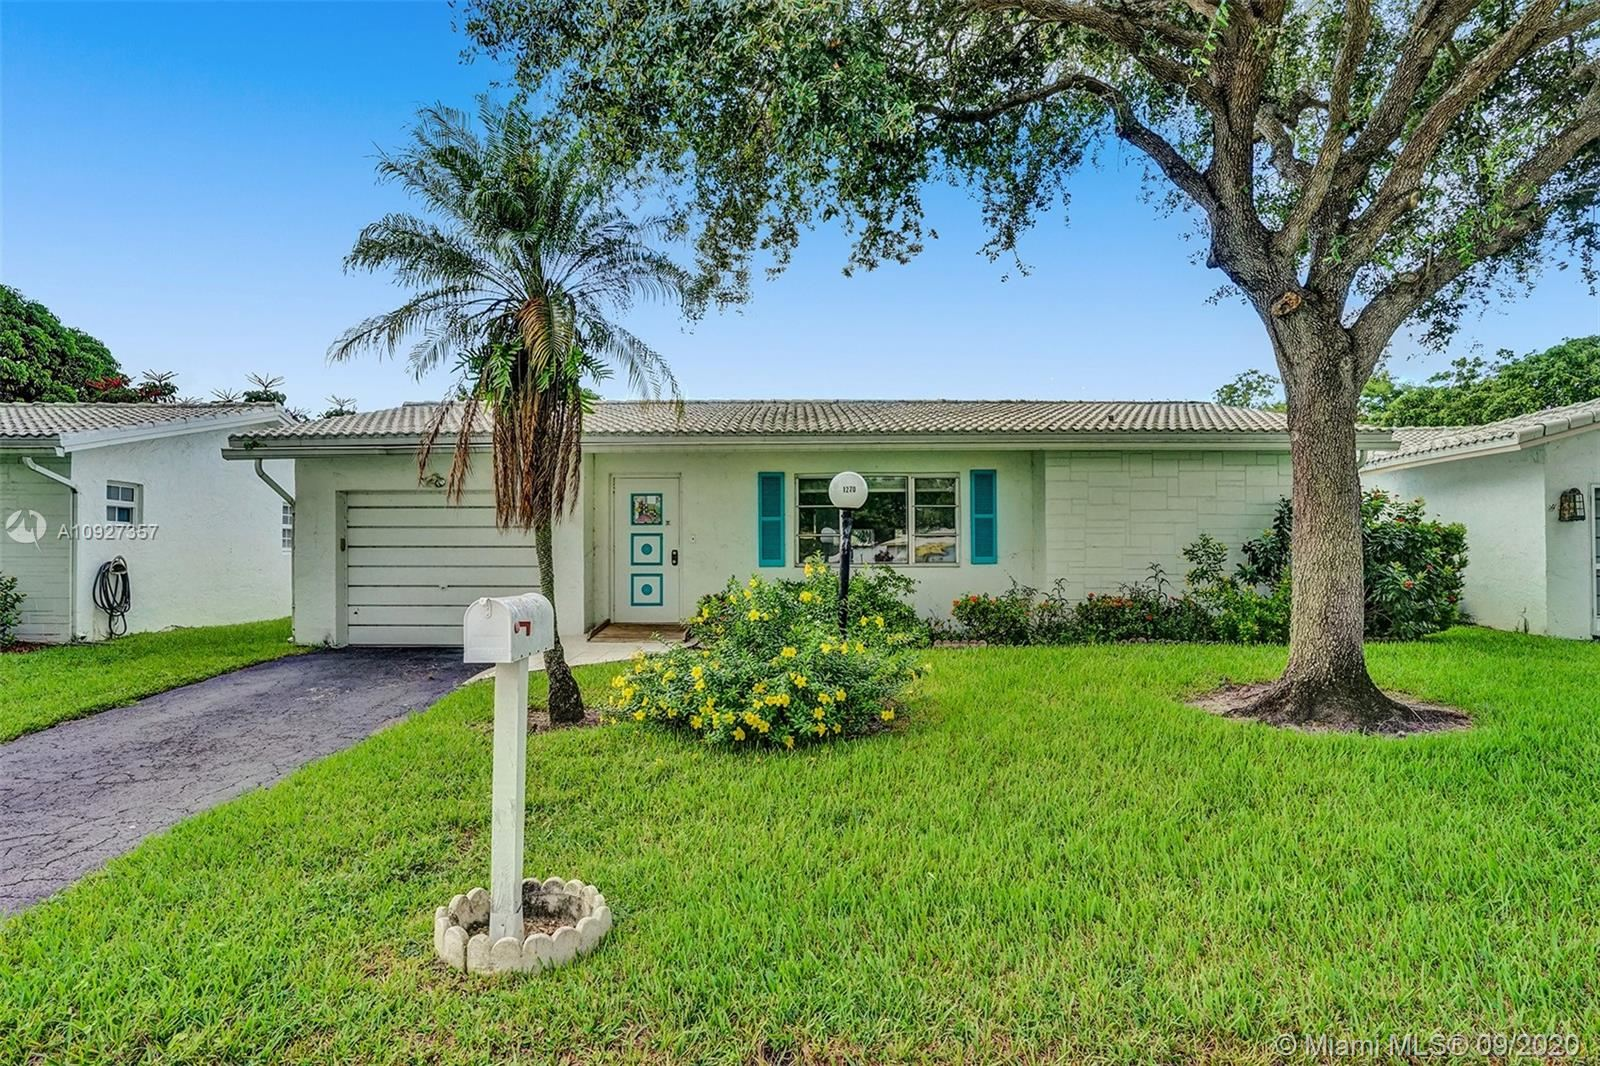 1270 NW 82nd Ave, Plantation, FL 33322 - #: A10927357